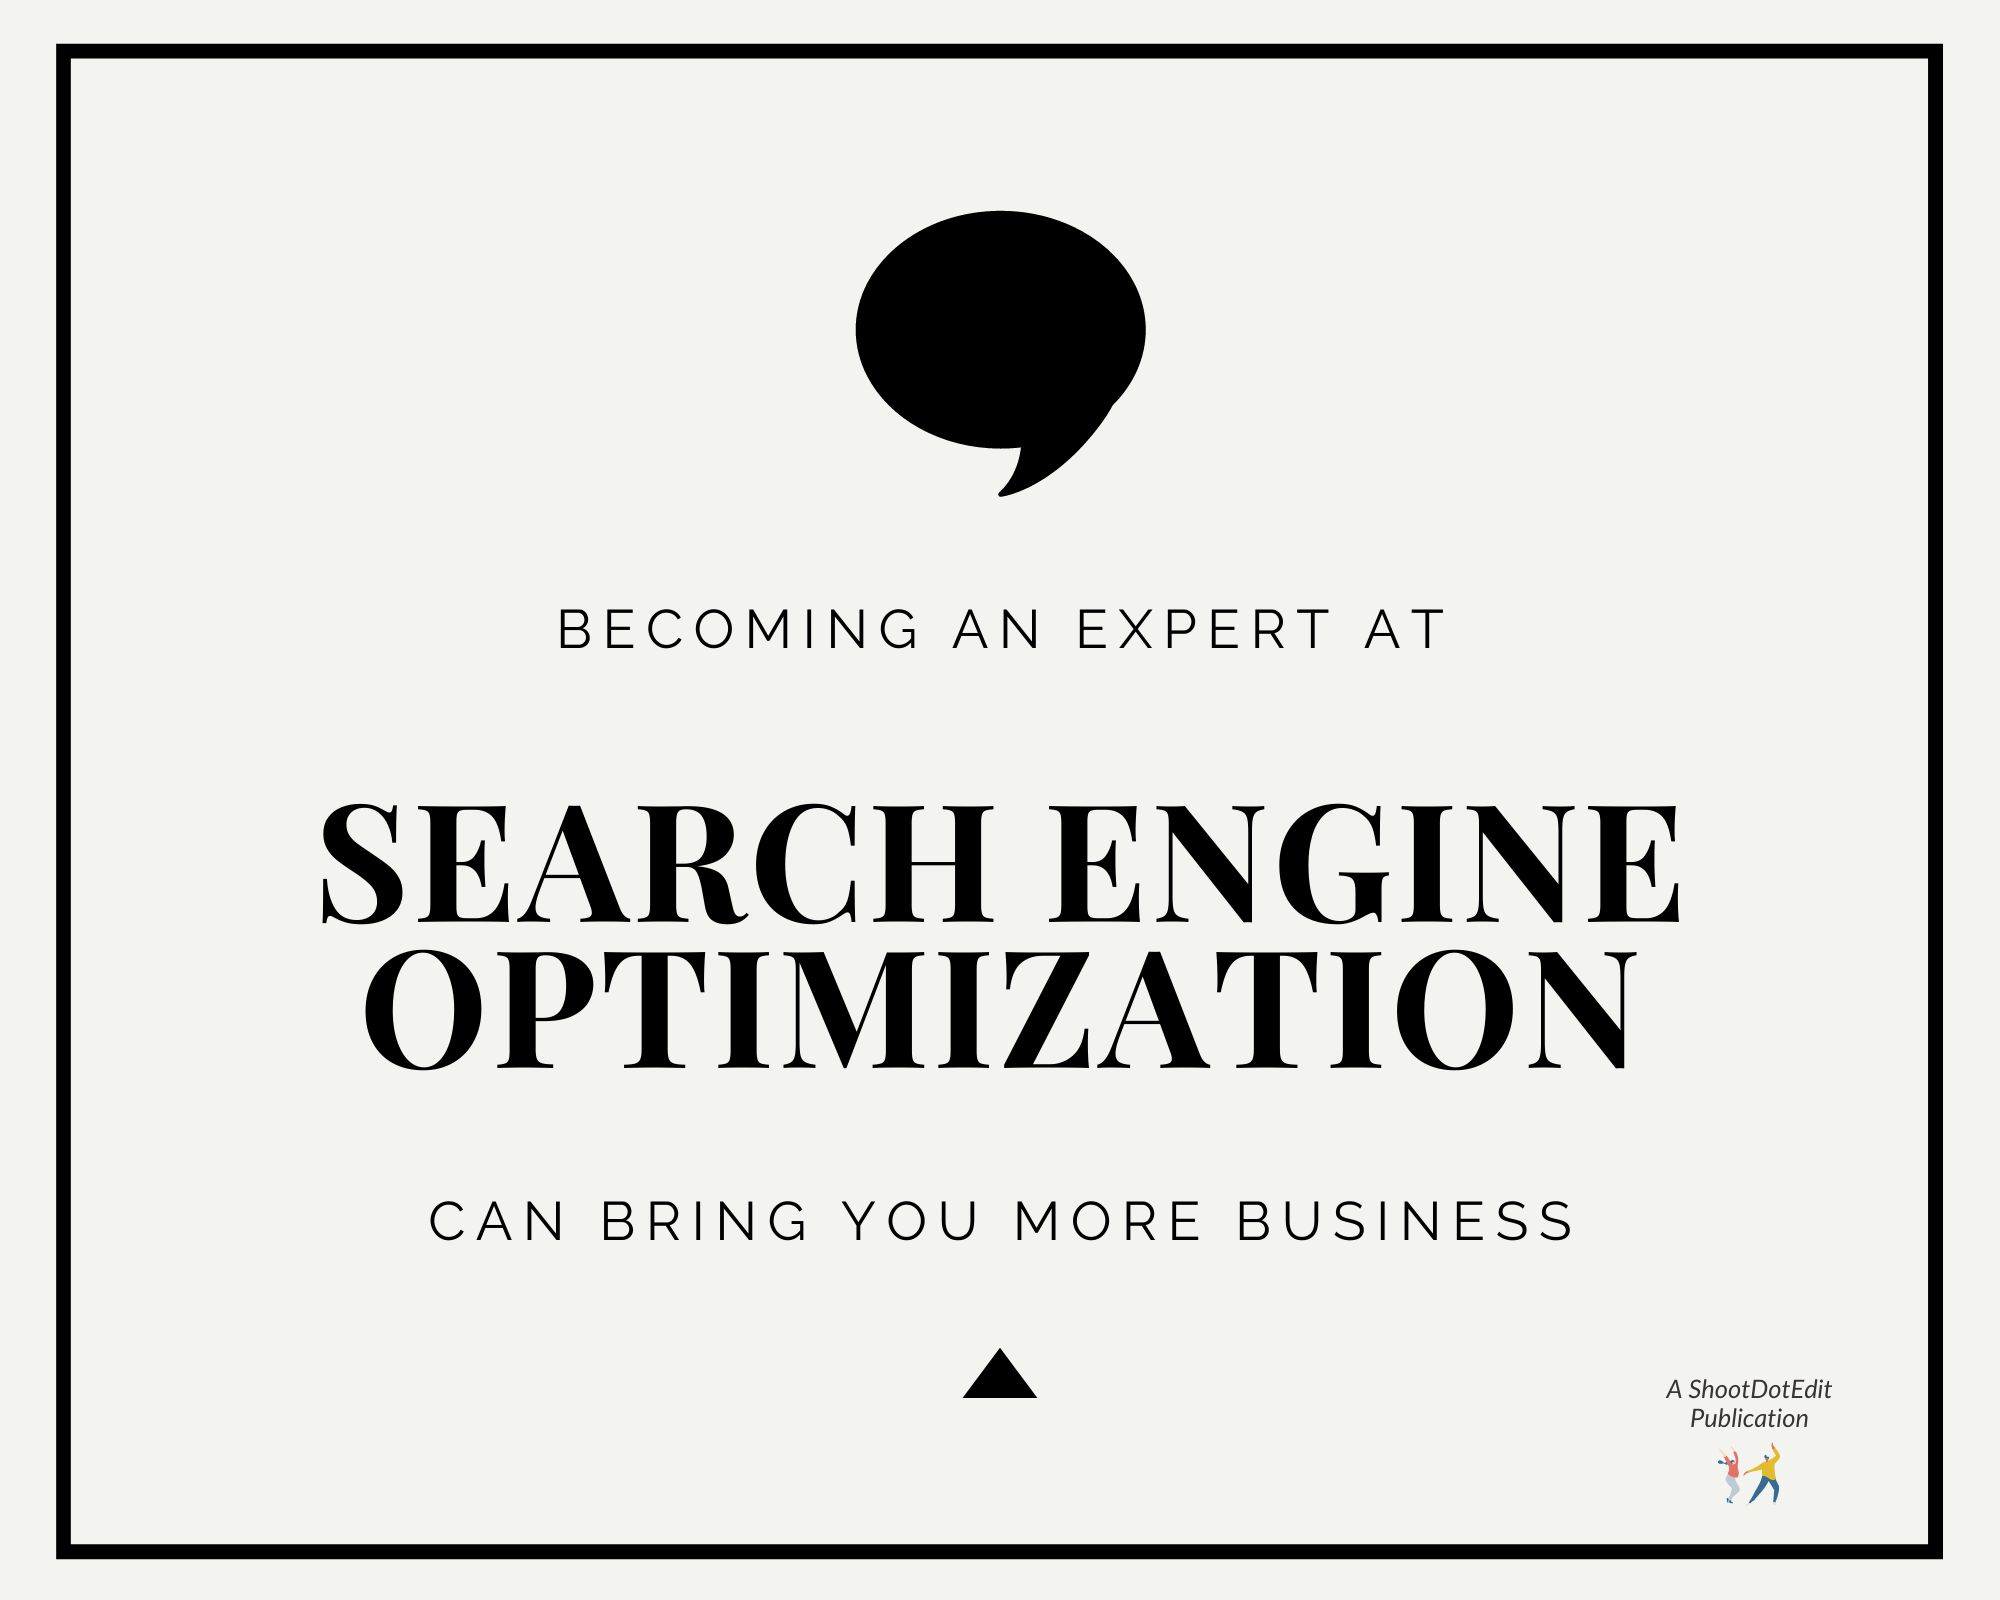 Infographic stating becoming an expert at search engine optimization can bring you more business